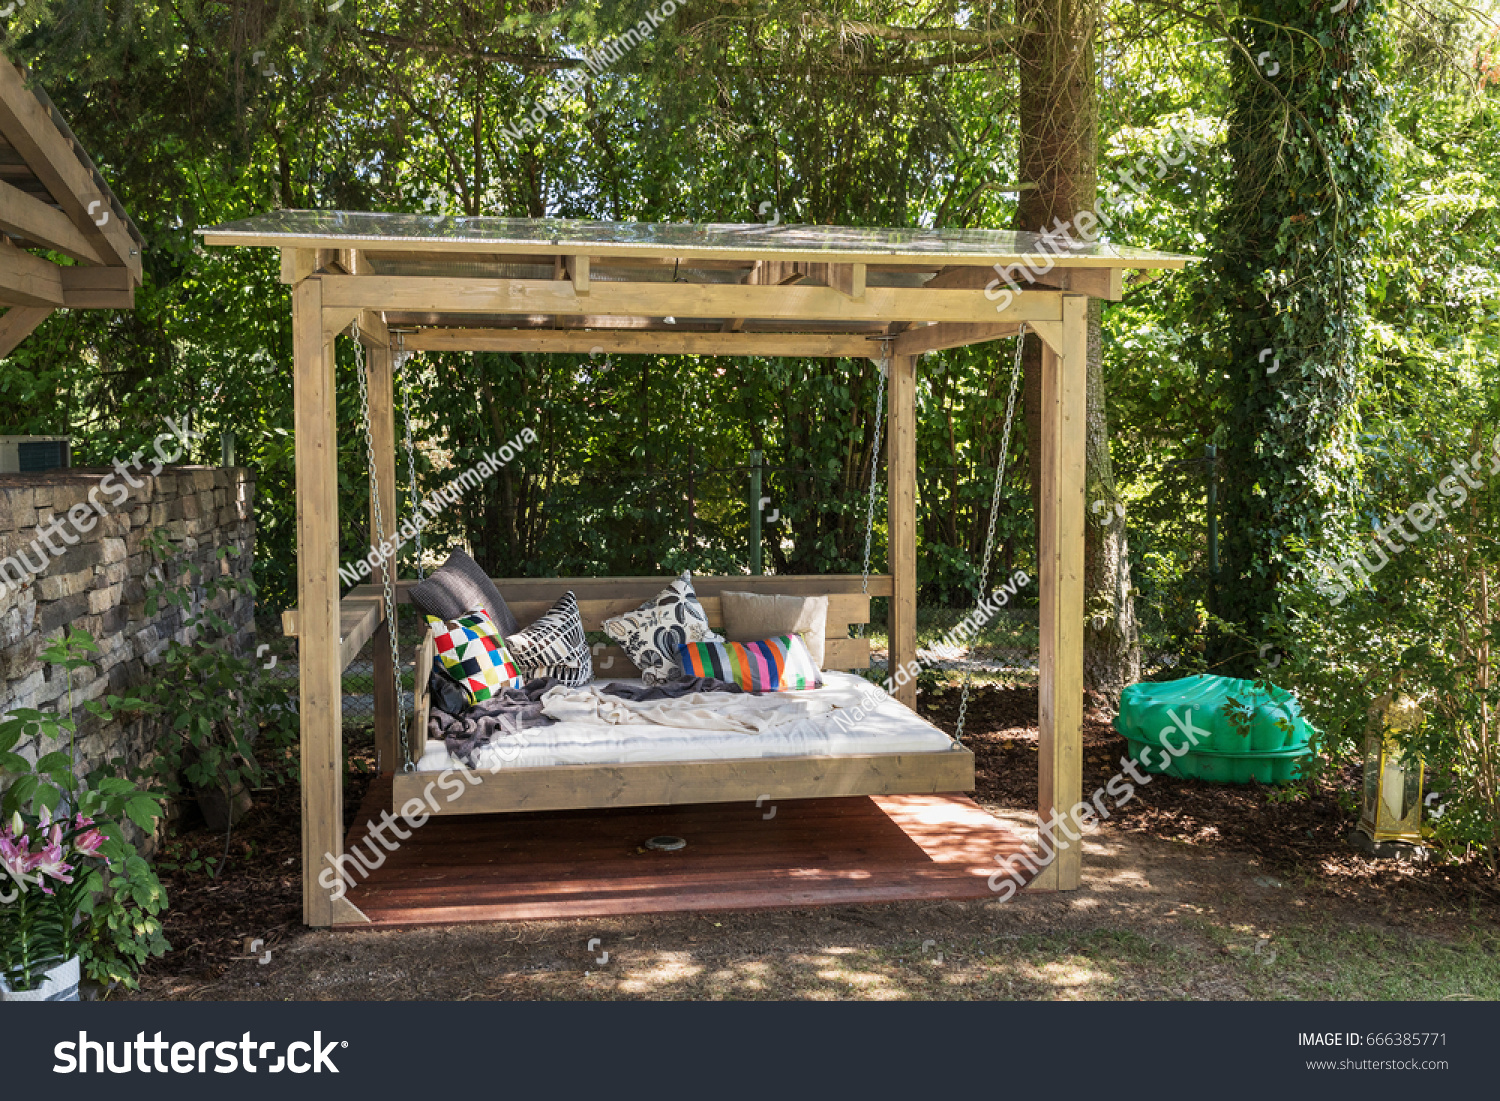 Photoedit Big Swing Stock Chaise Bed Now666385771 Outdoor Longue MzpUVS